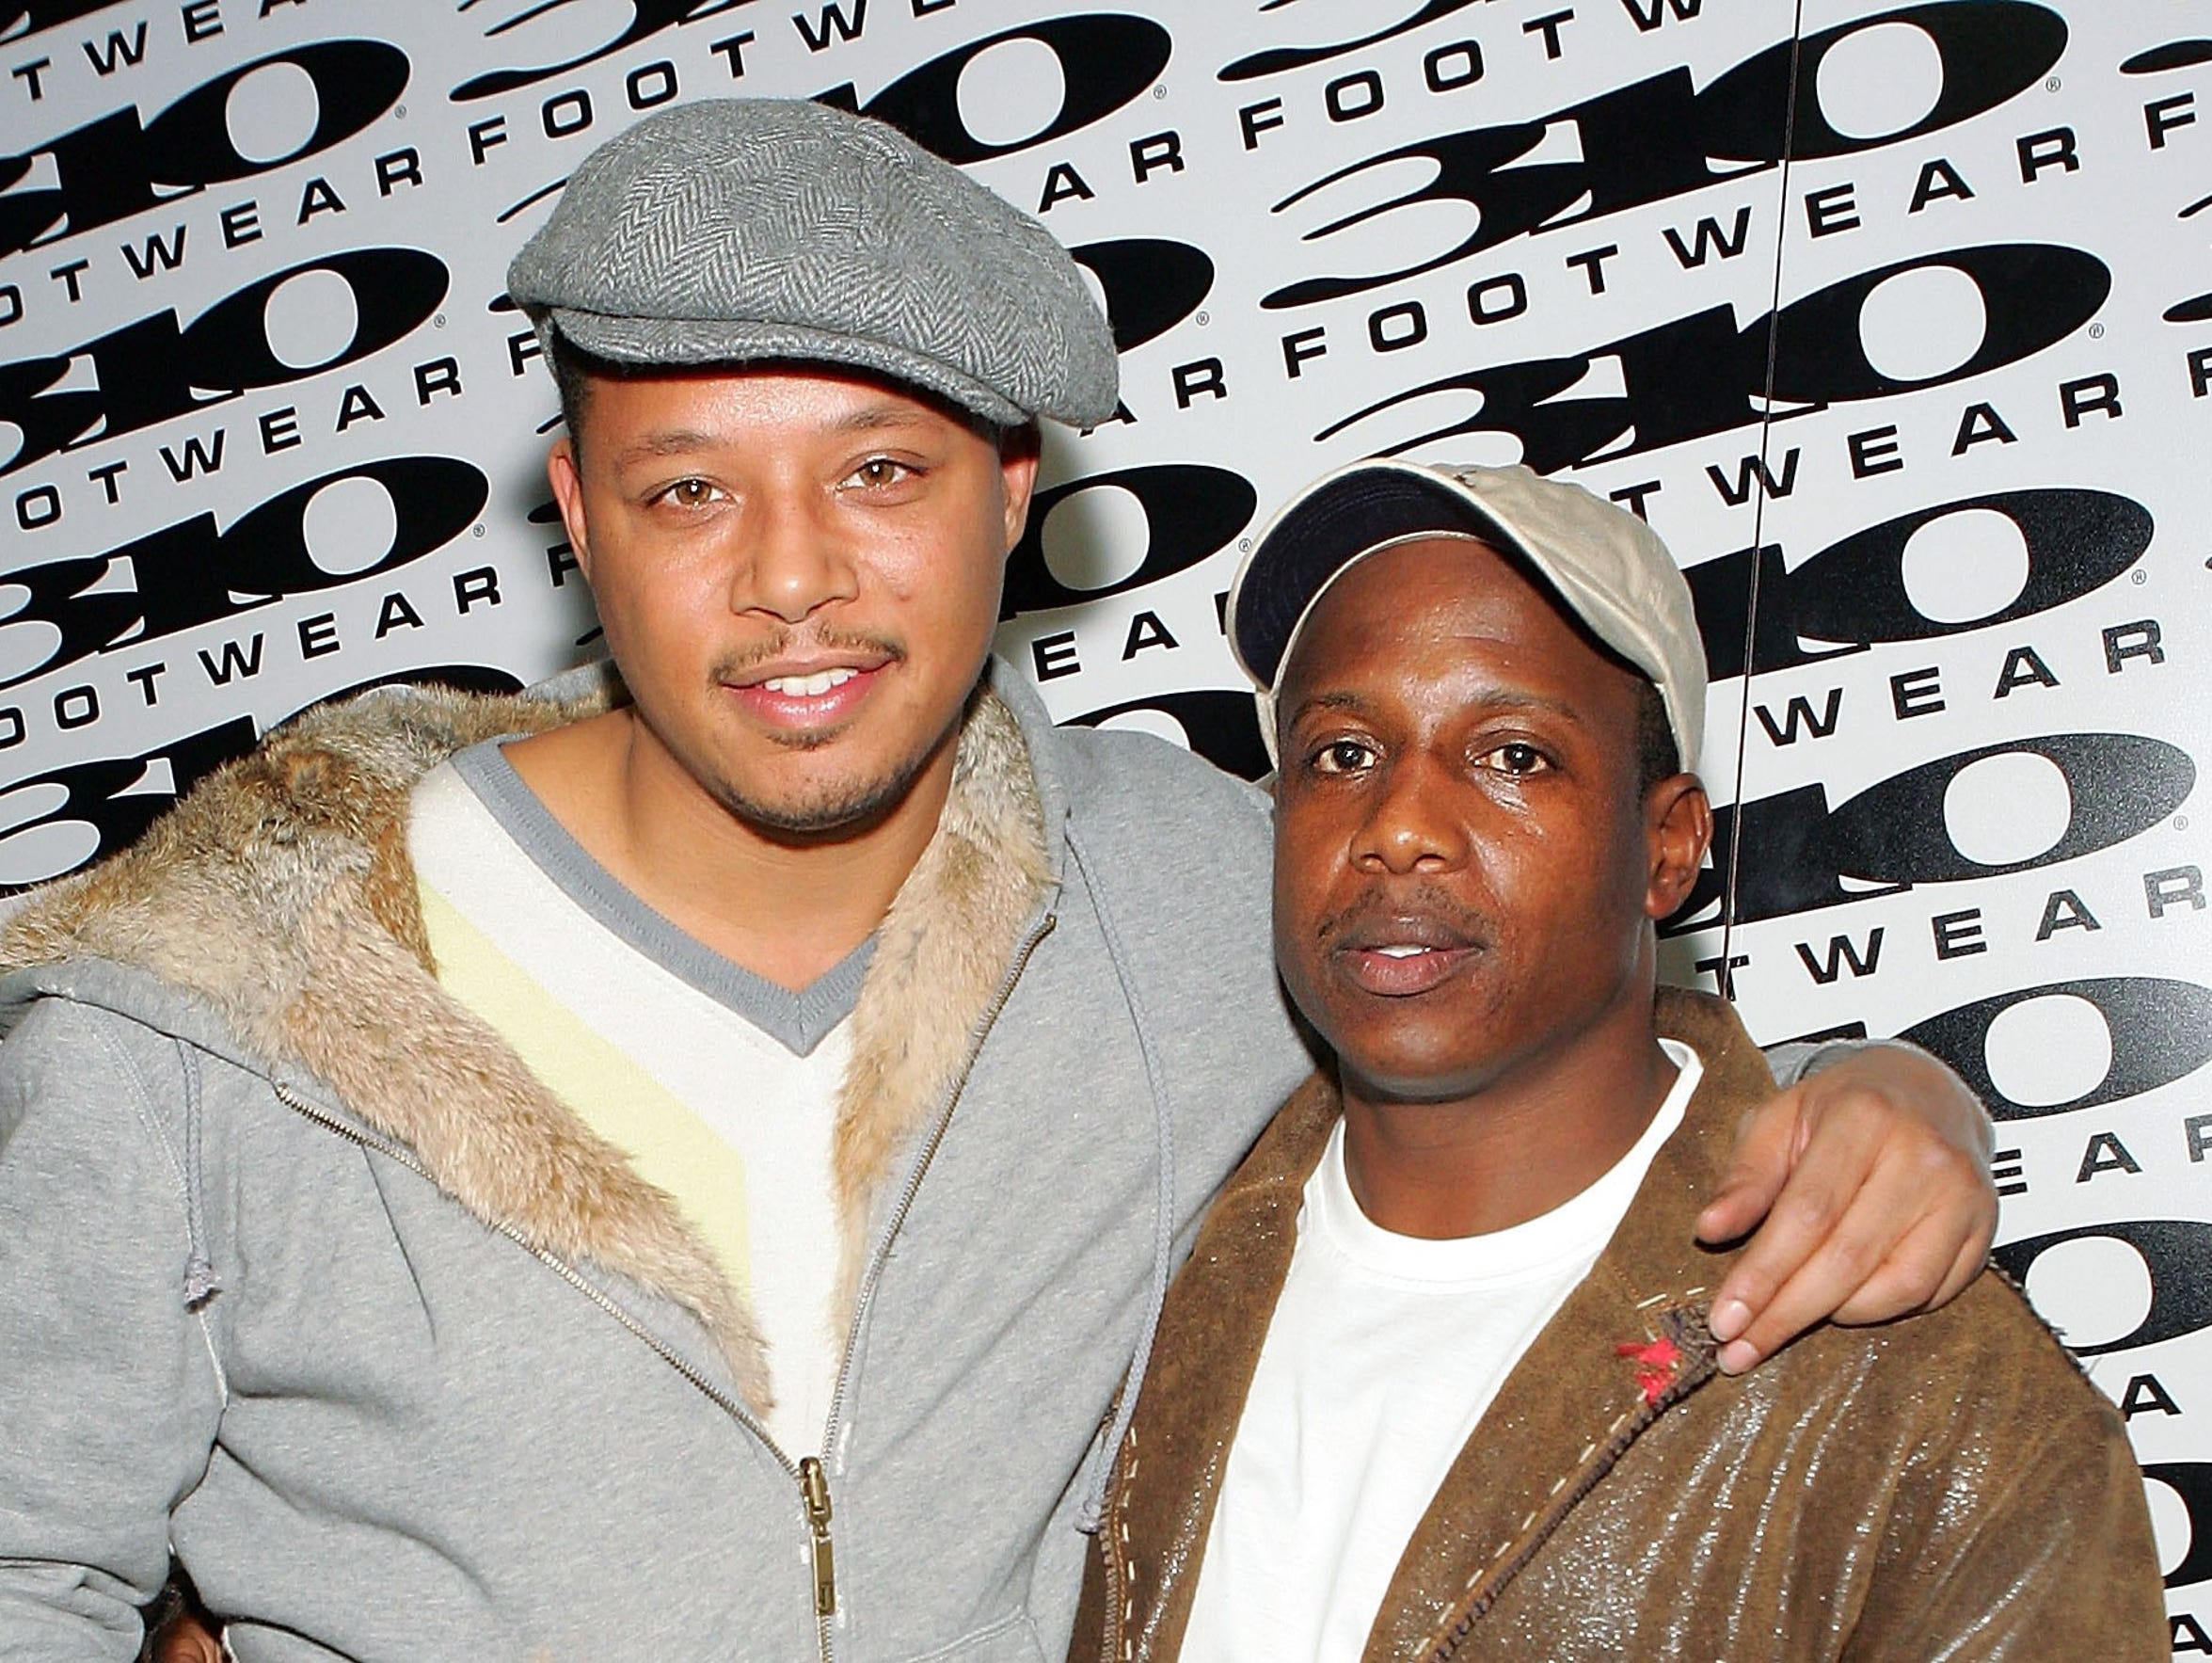 Actor Terrence Howard, left, in 2006 with superstar